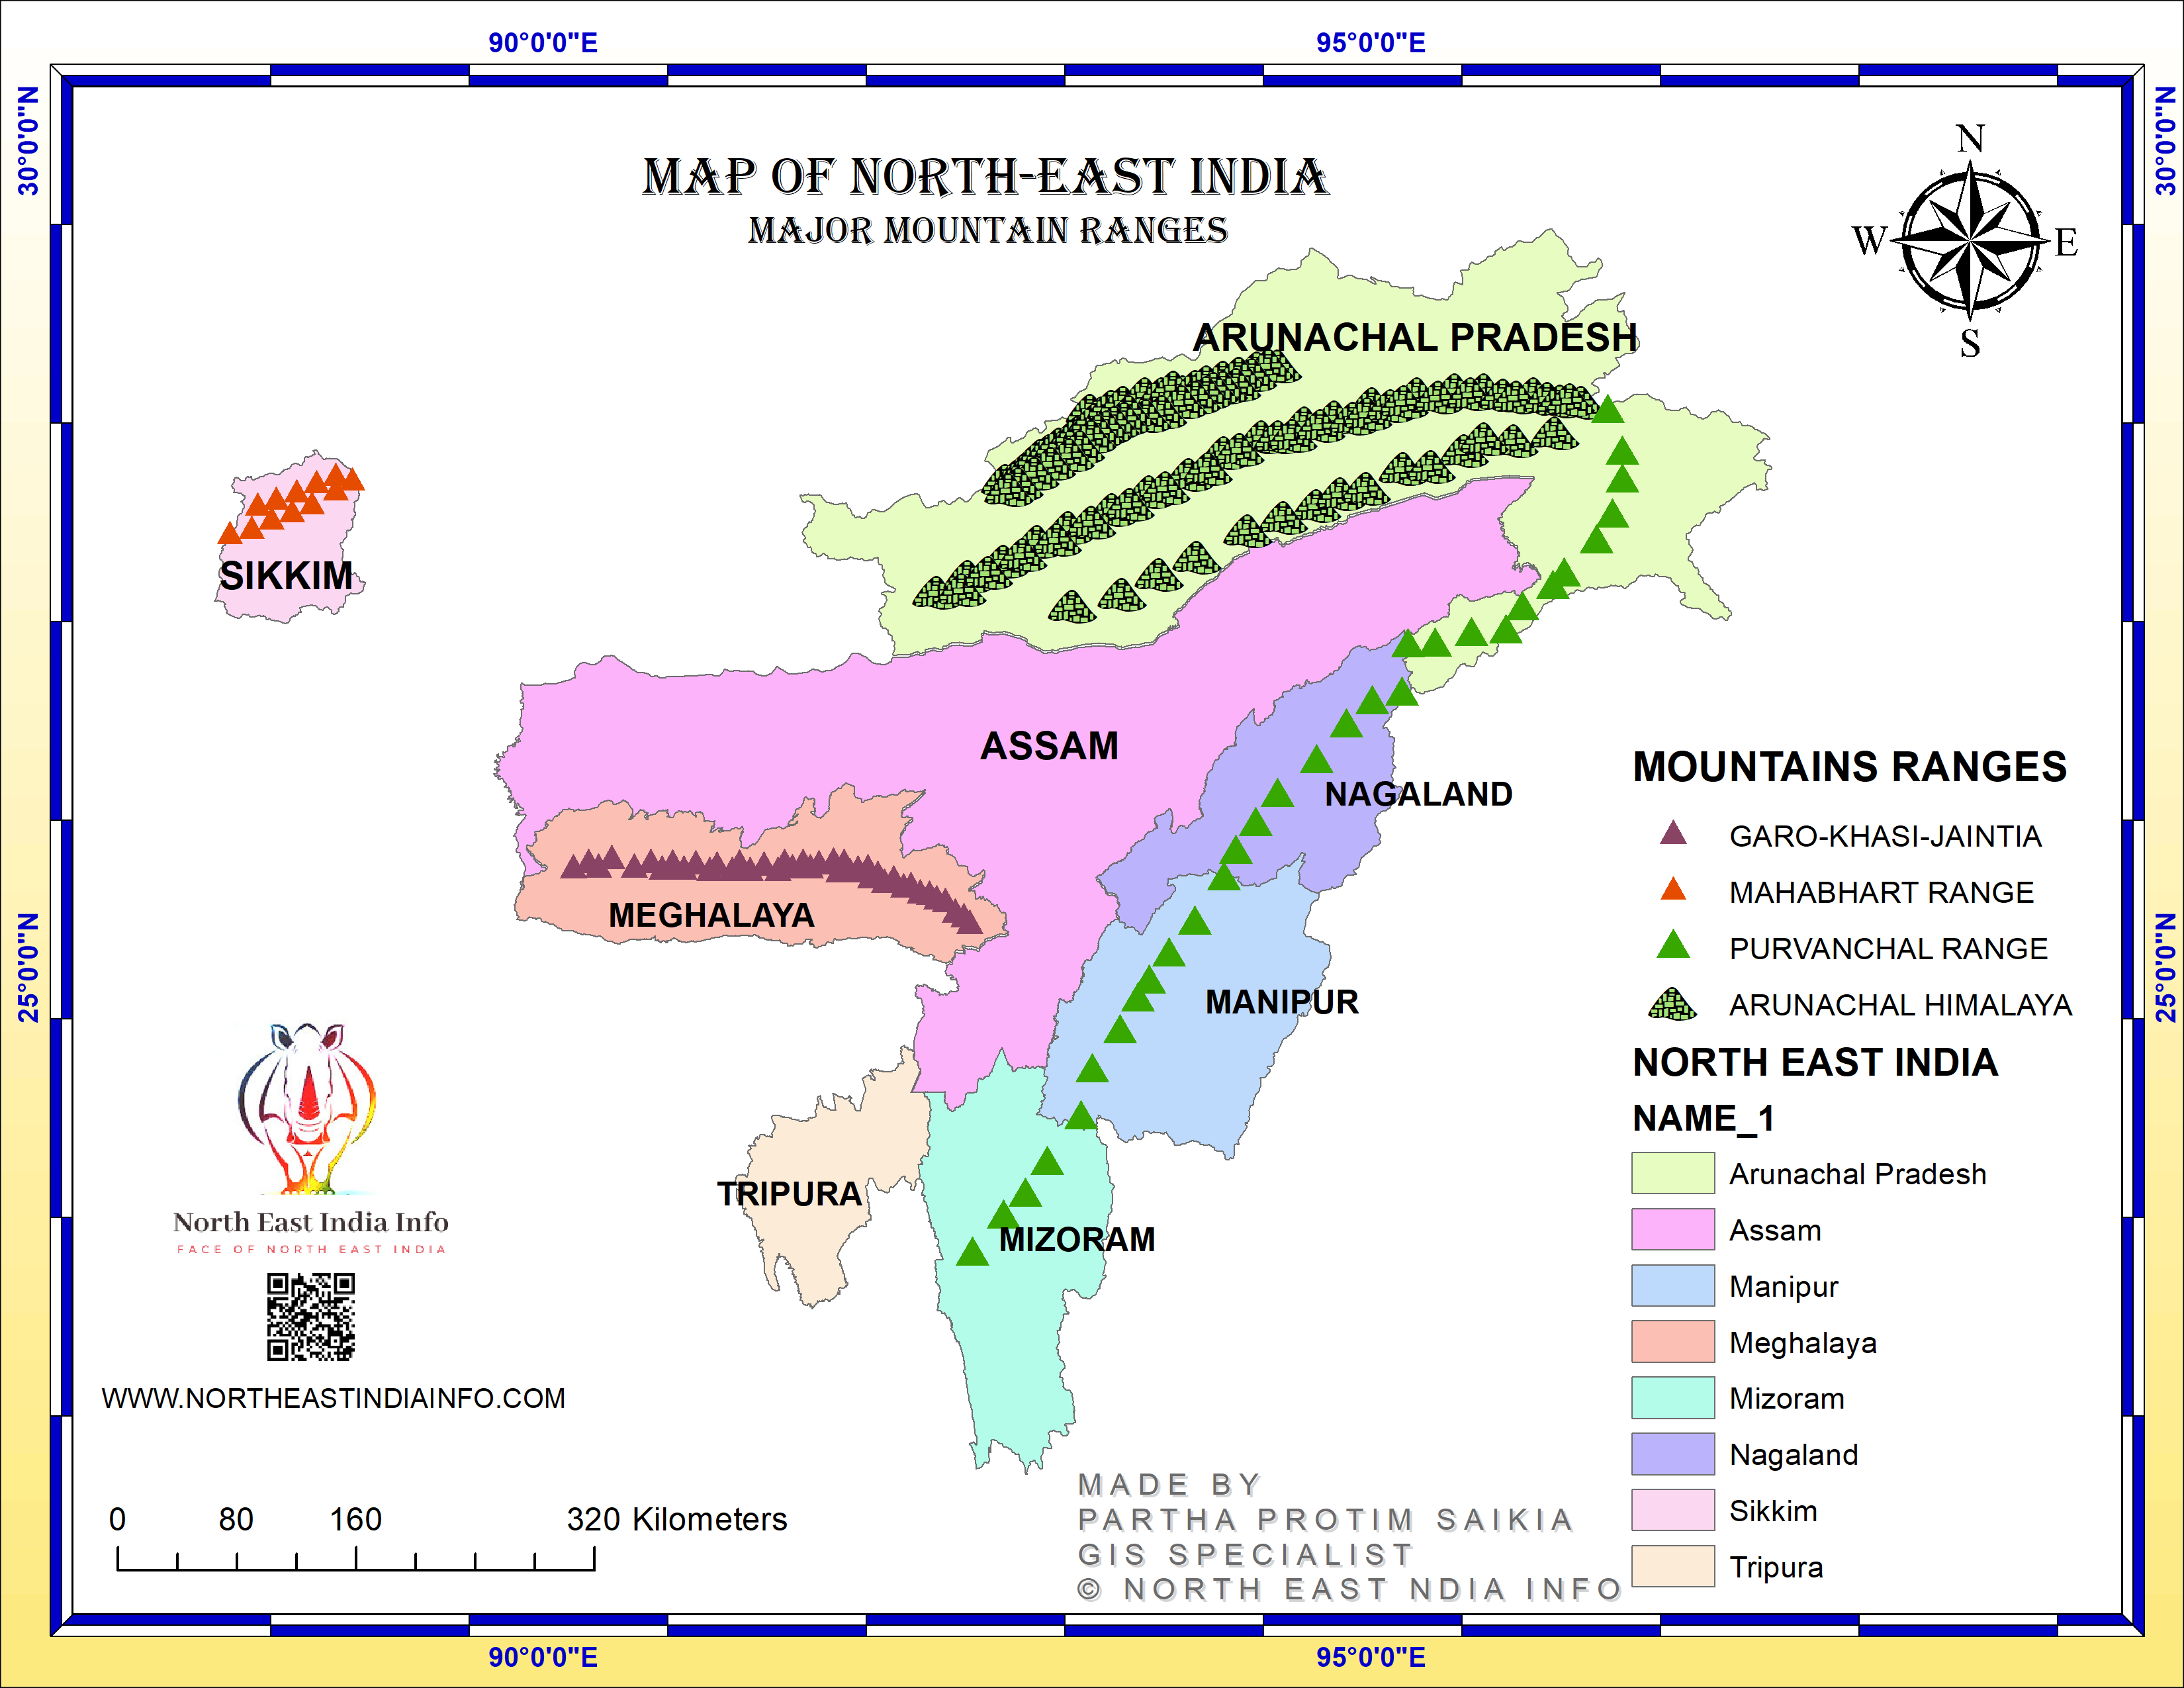 Division of The Himalayas UPSC Notes | EduRev